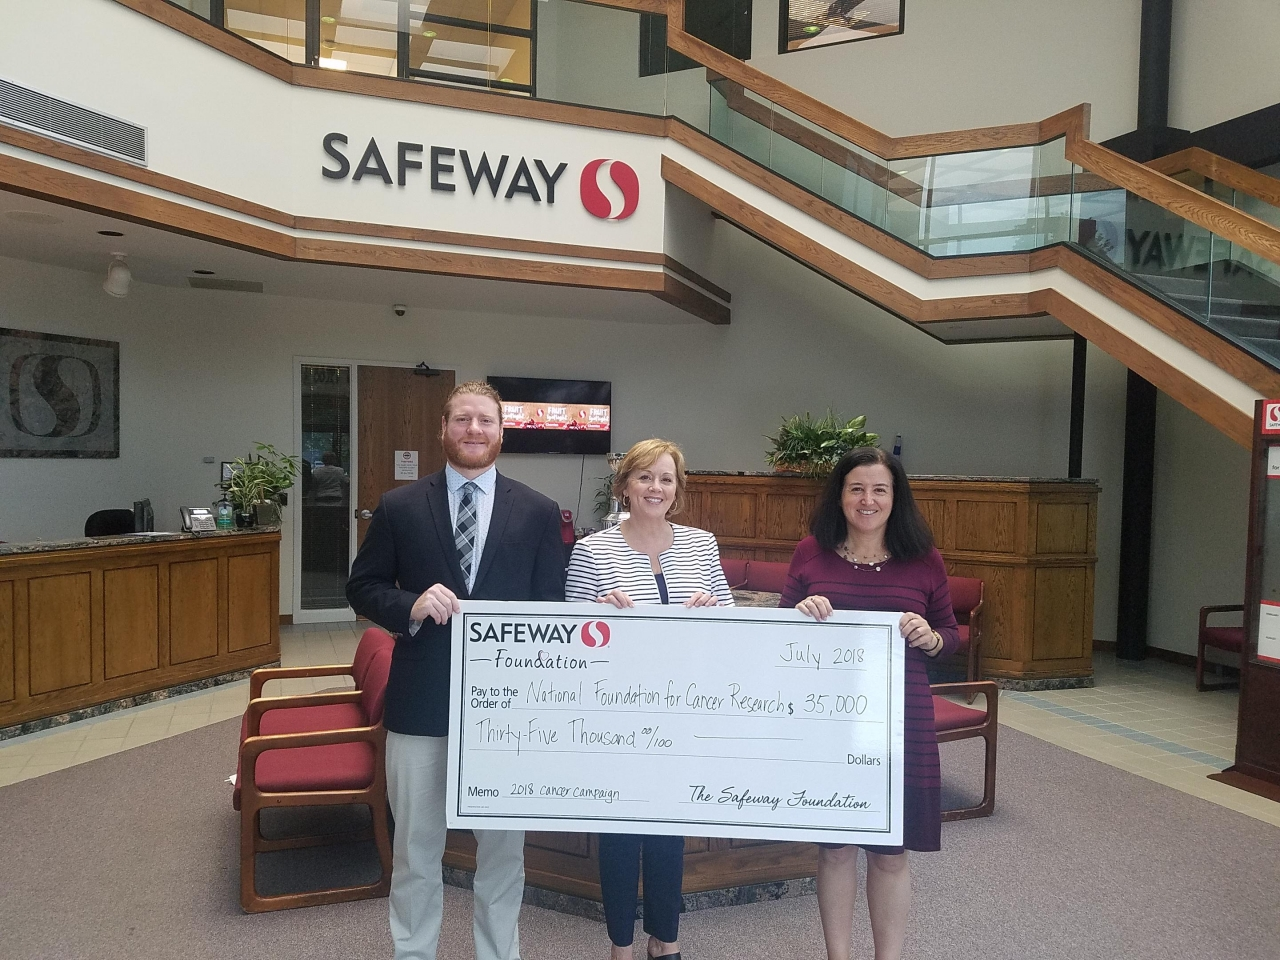 Safeway Foundation grant awarded to the National